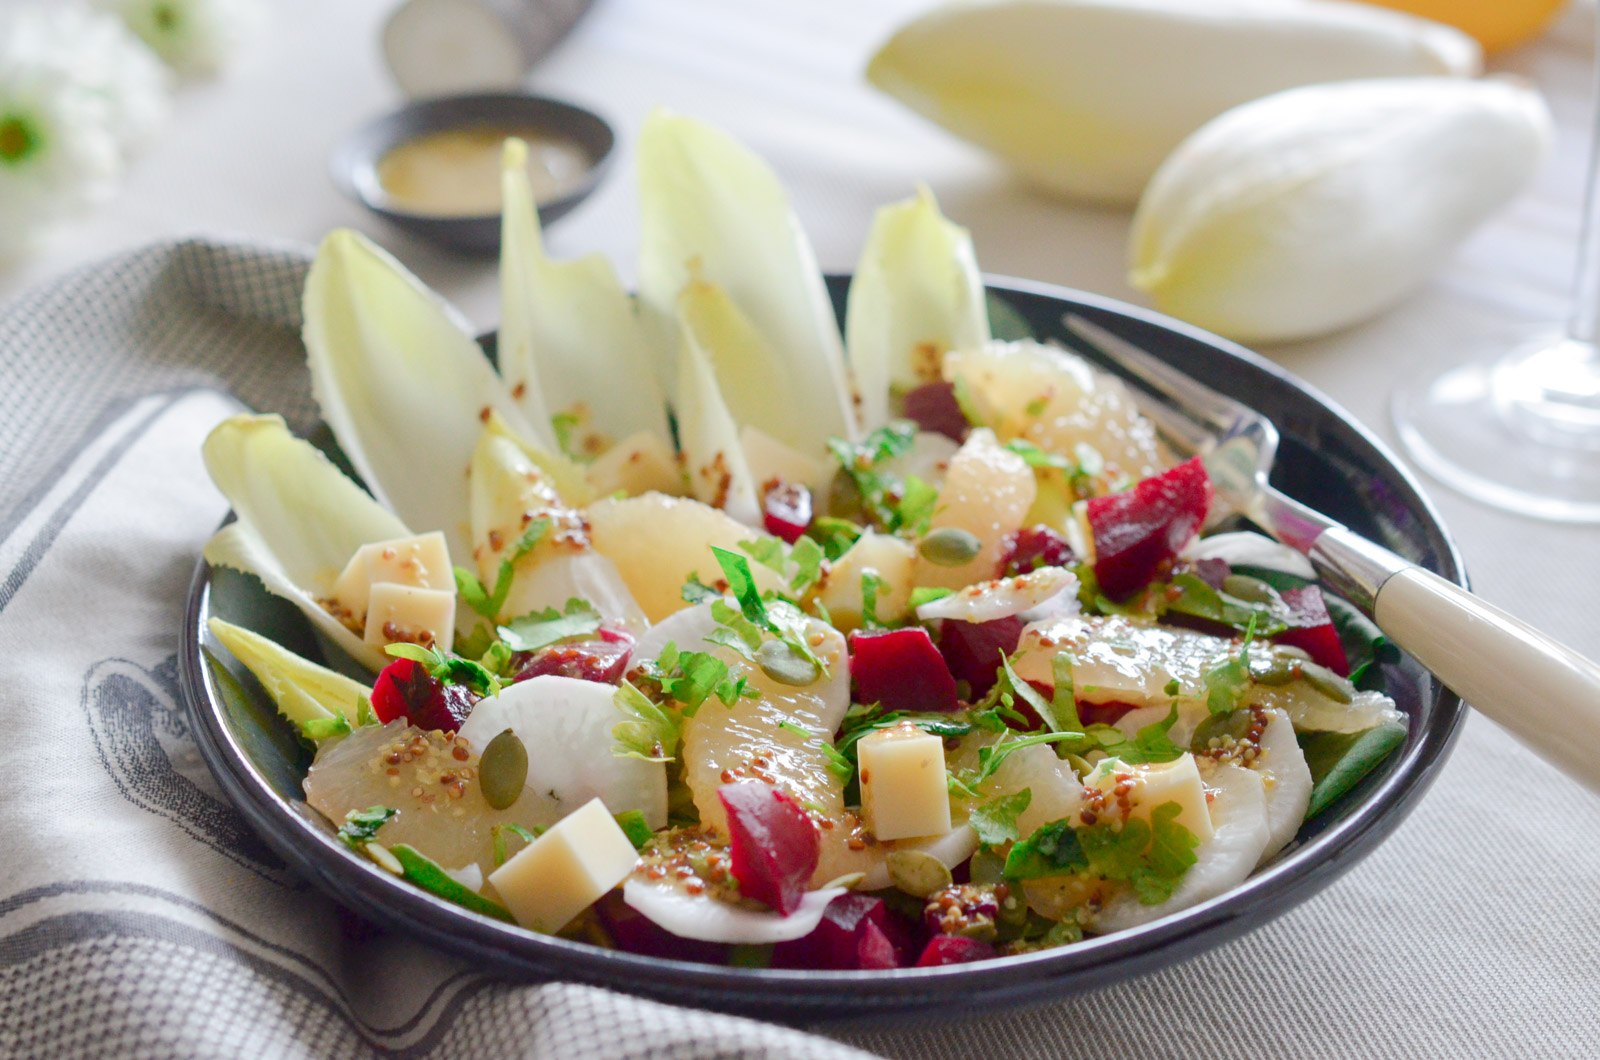 Salade Endives Munster Pamplemousse Graines Courges 3 Sur 5